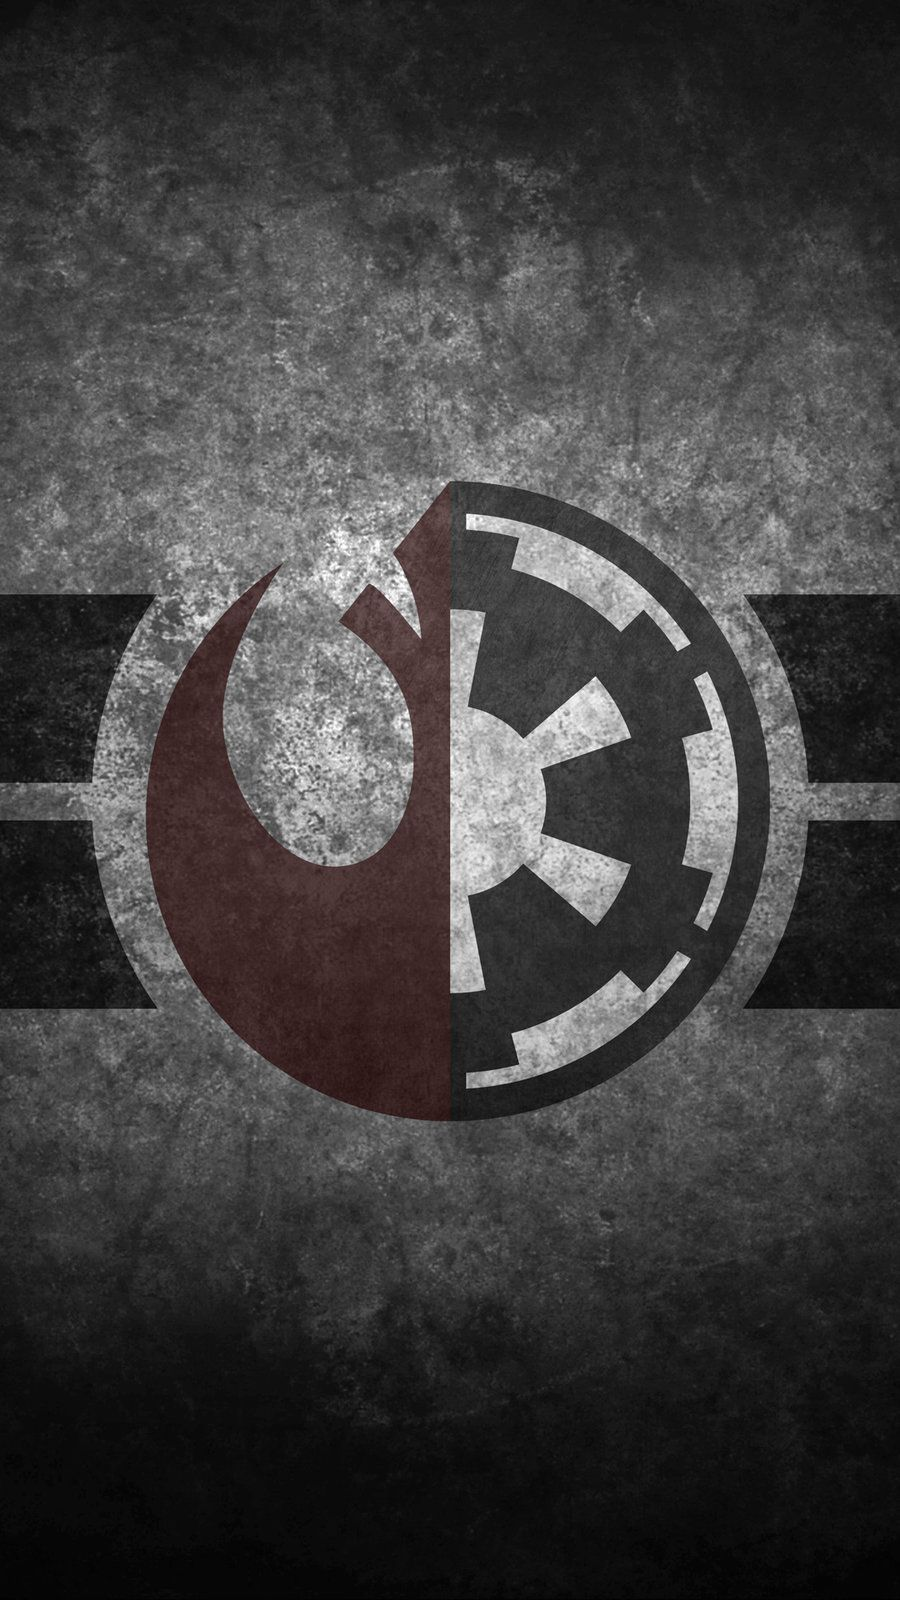 Star Wars Quality Cell Phone Backgrounds Star Wars Art